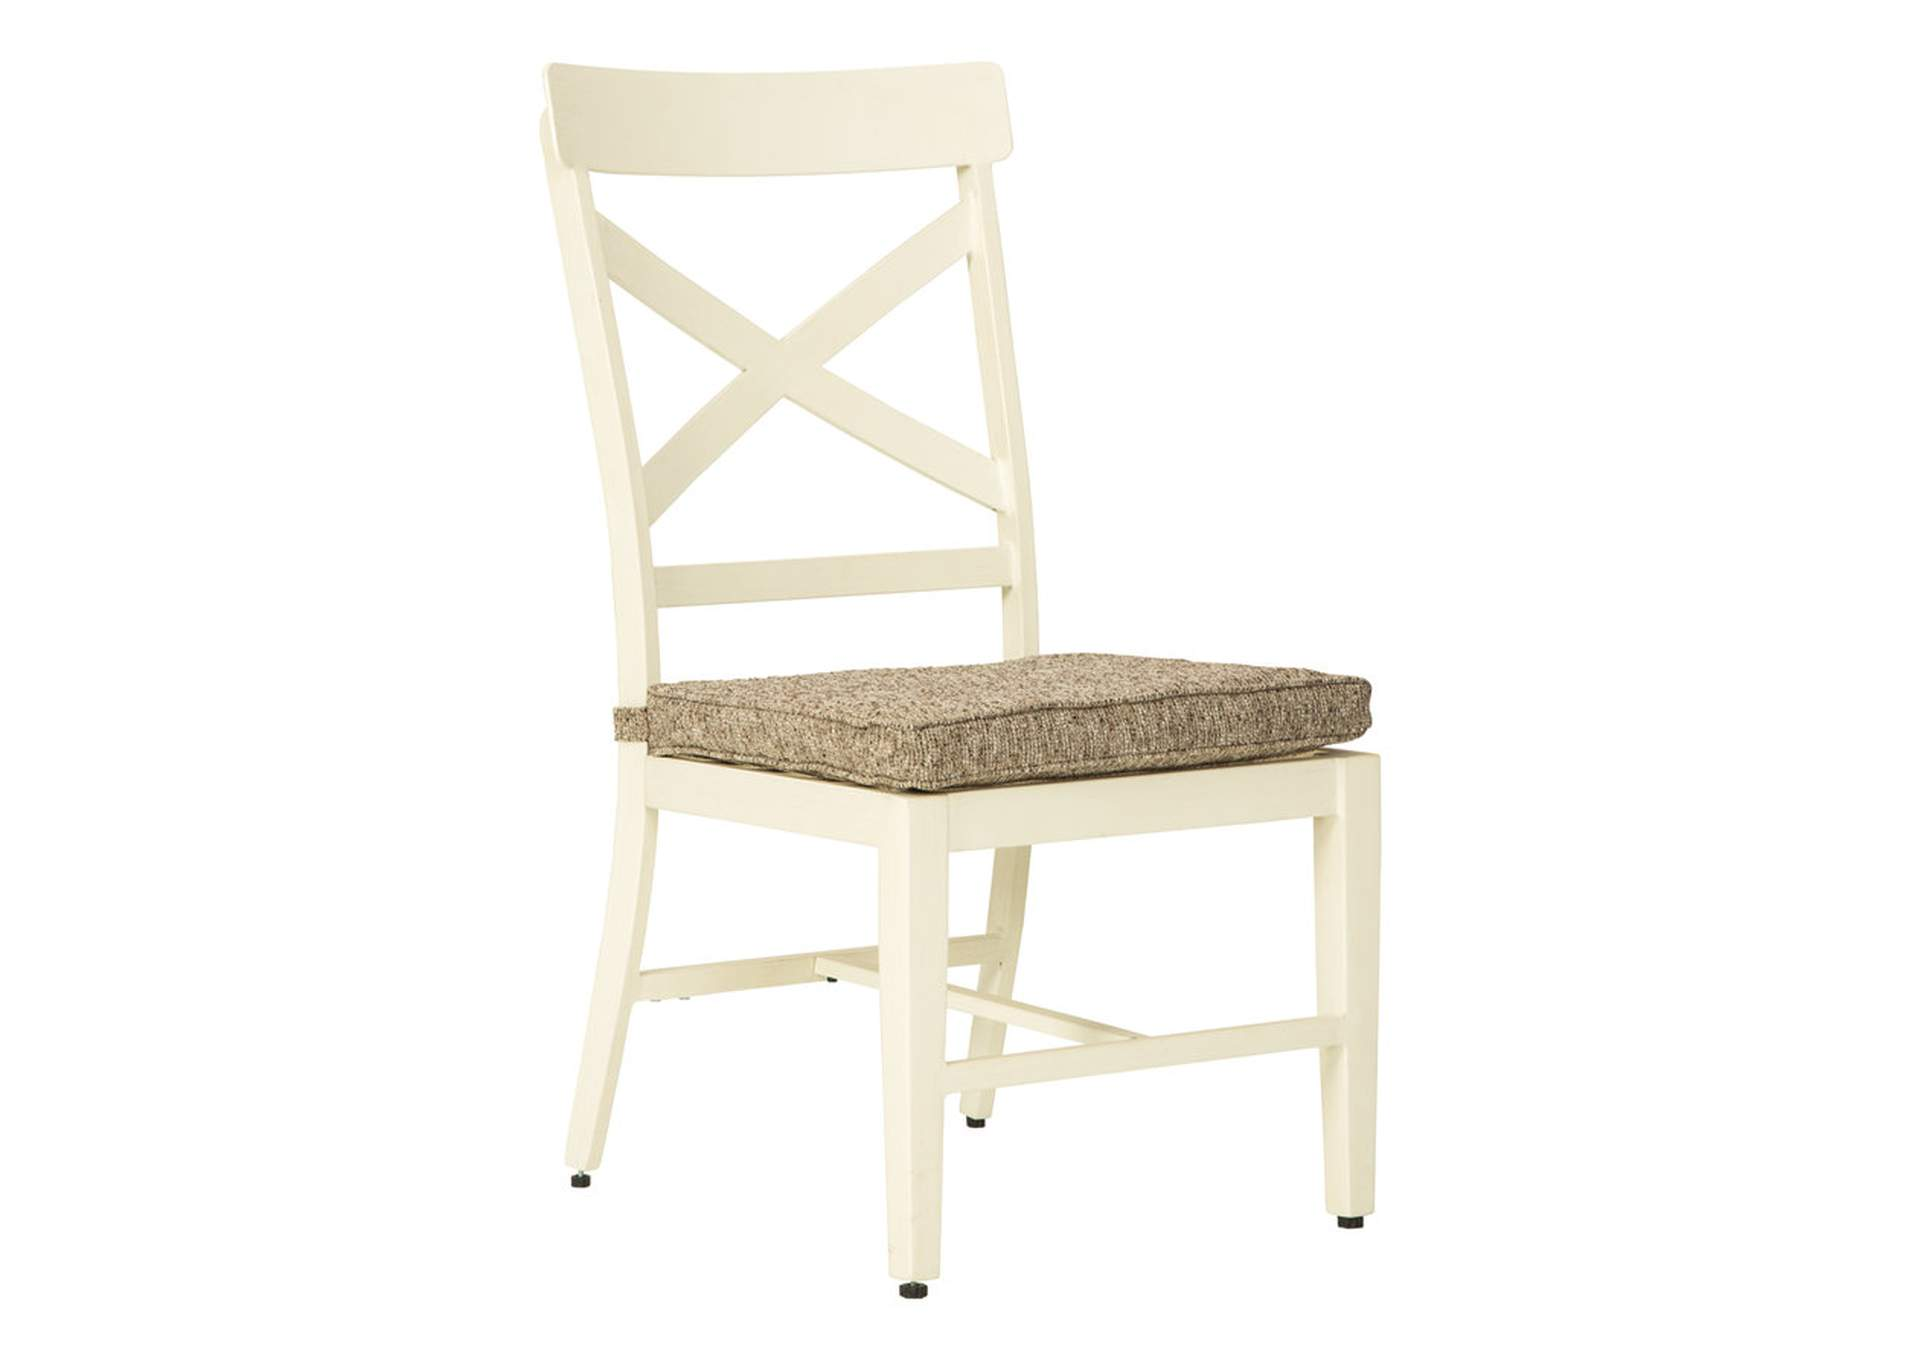 Preston Bay Antique White Chair with Cushion (Set of 2)